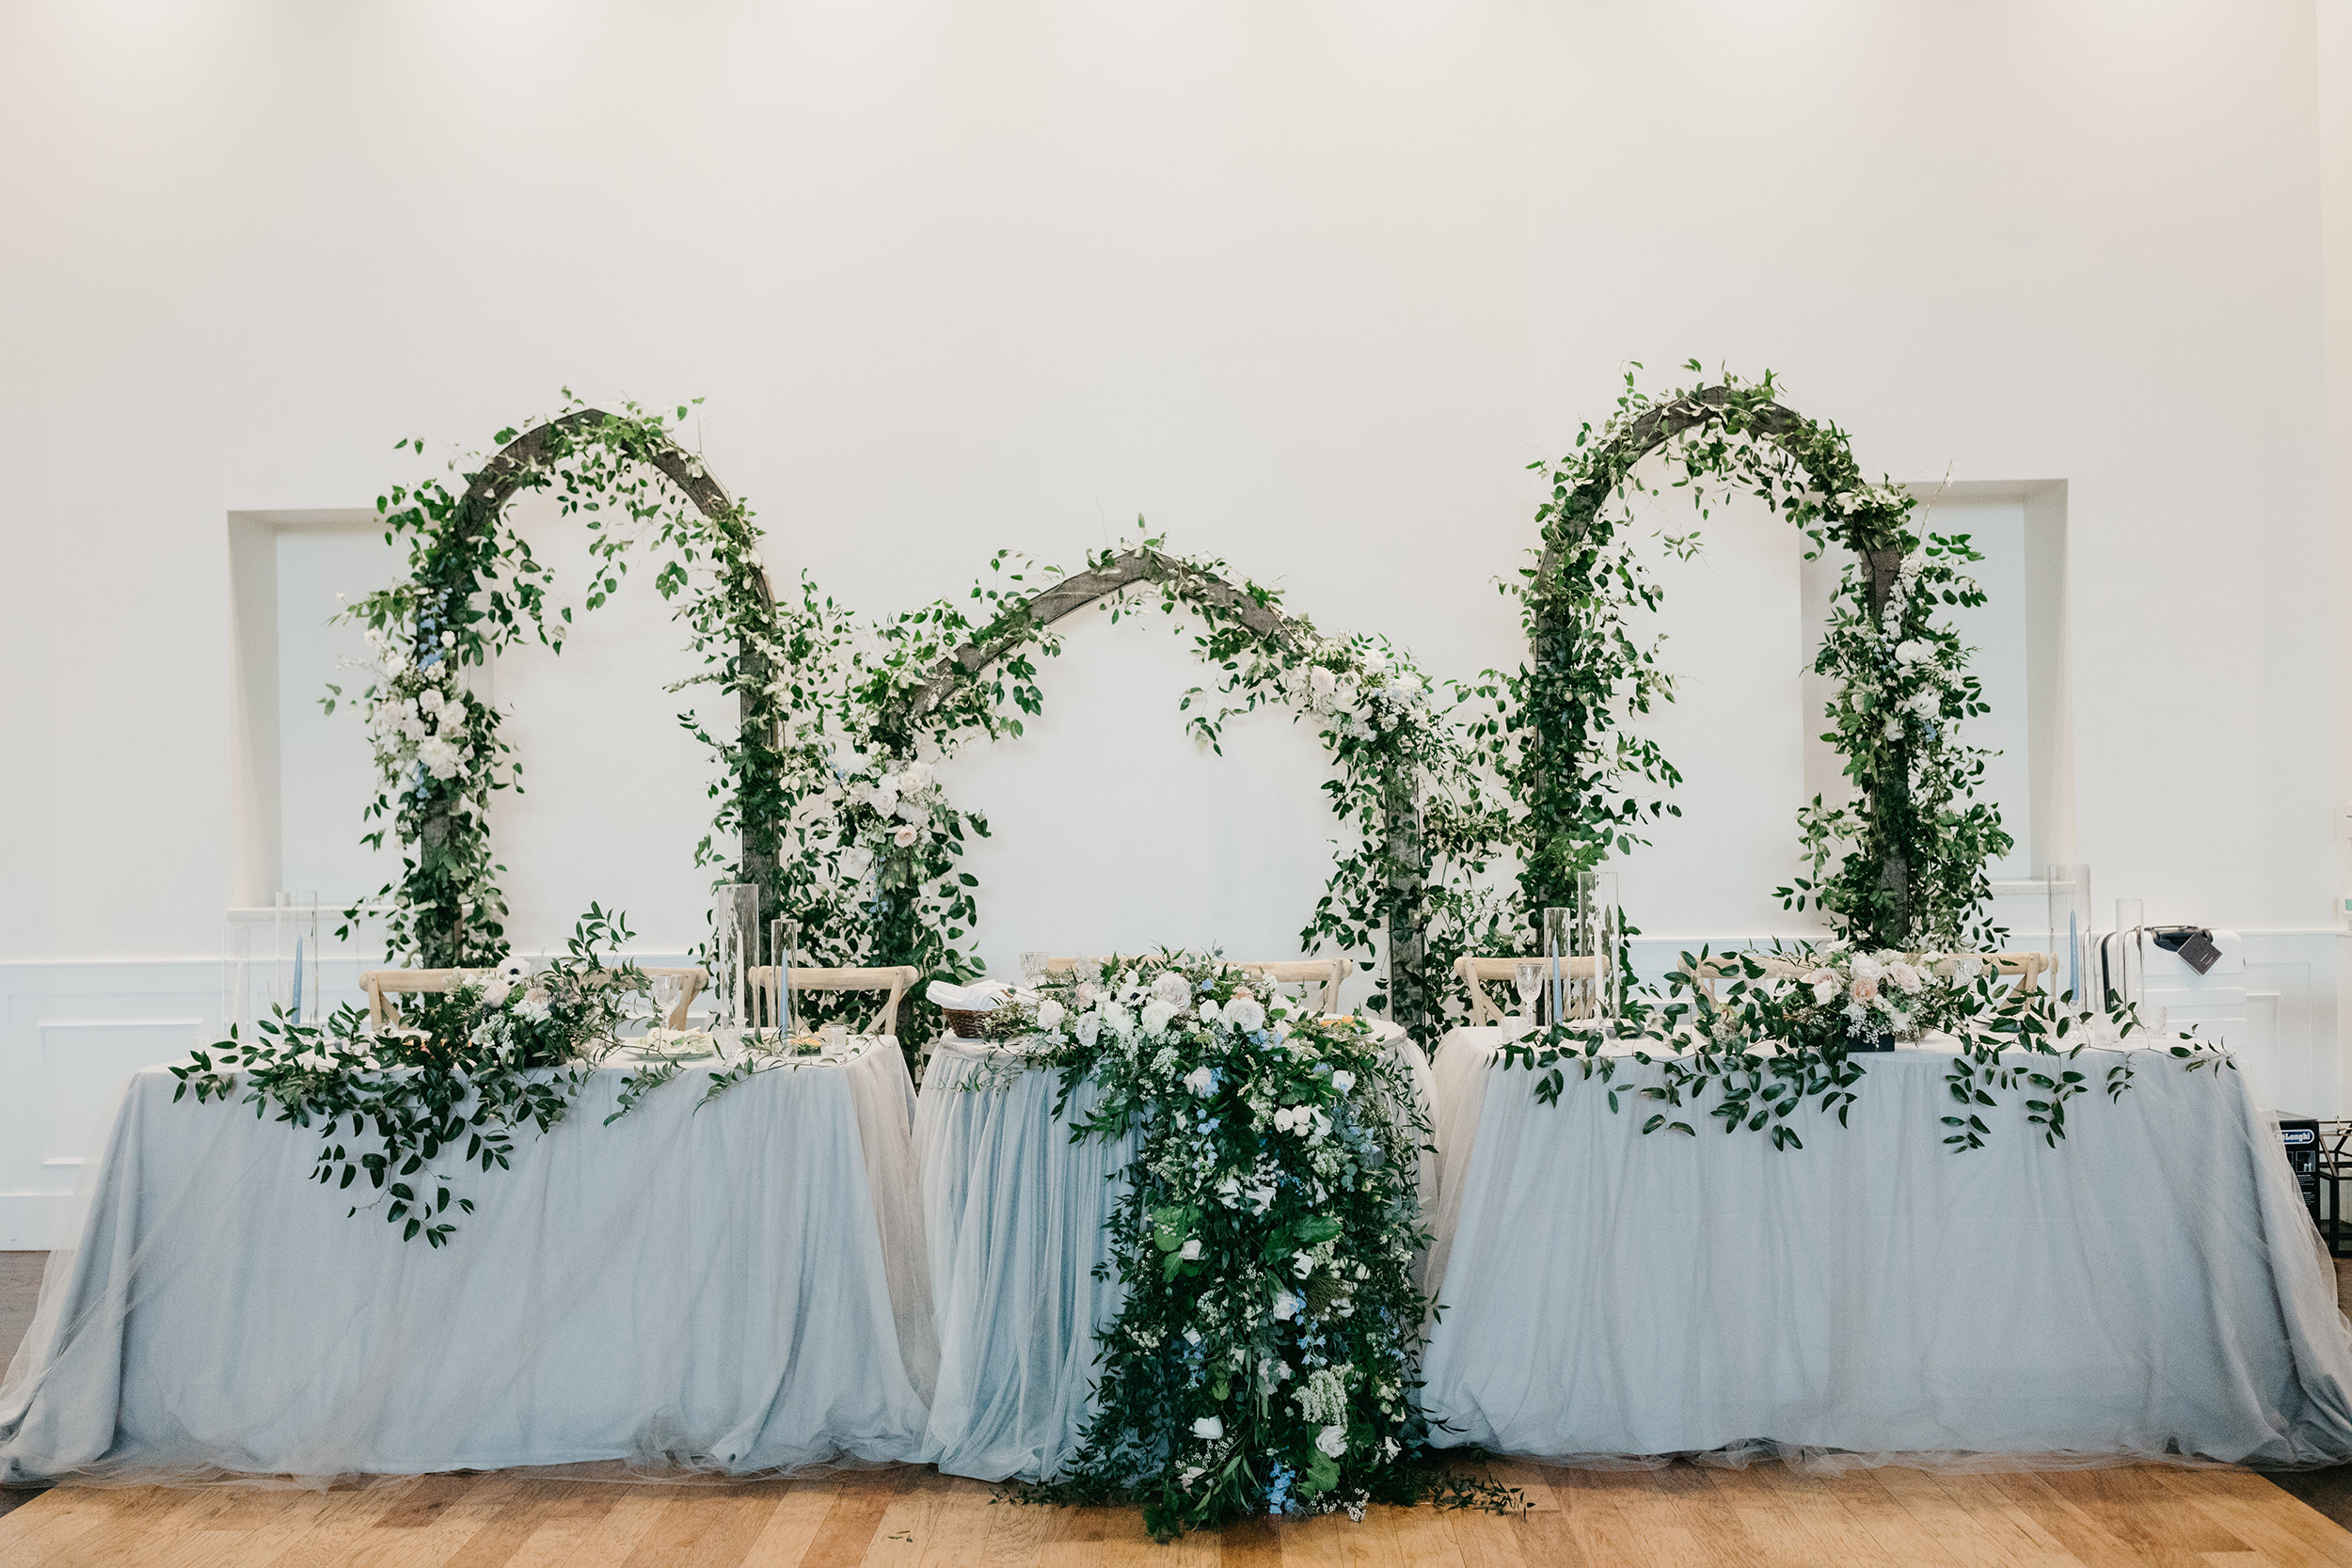 Violette-fleurs-event-design-roseville-Nelli-noel-photography-the-falls-event-center-Curated-Beautiful-Decor-head-table-reception.jpg